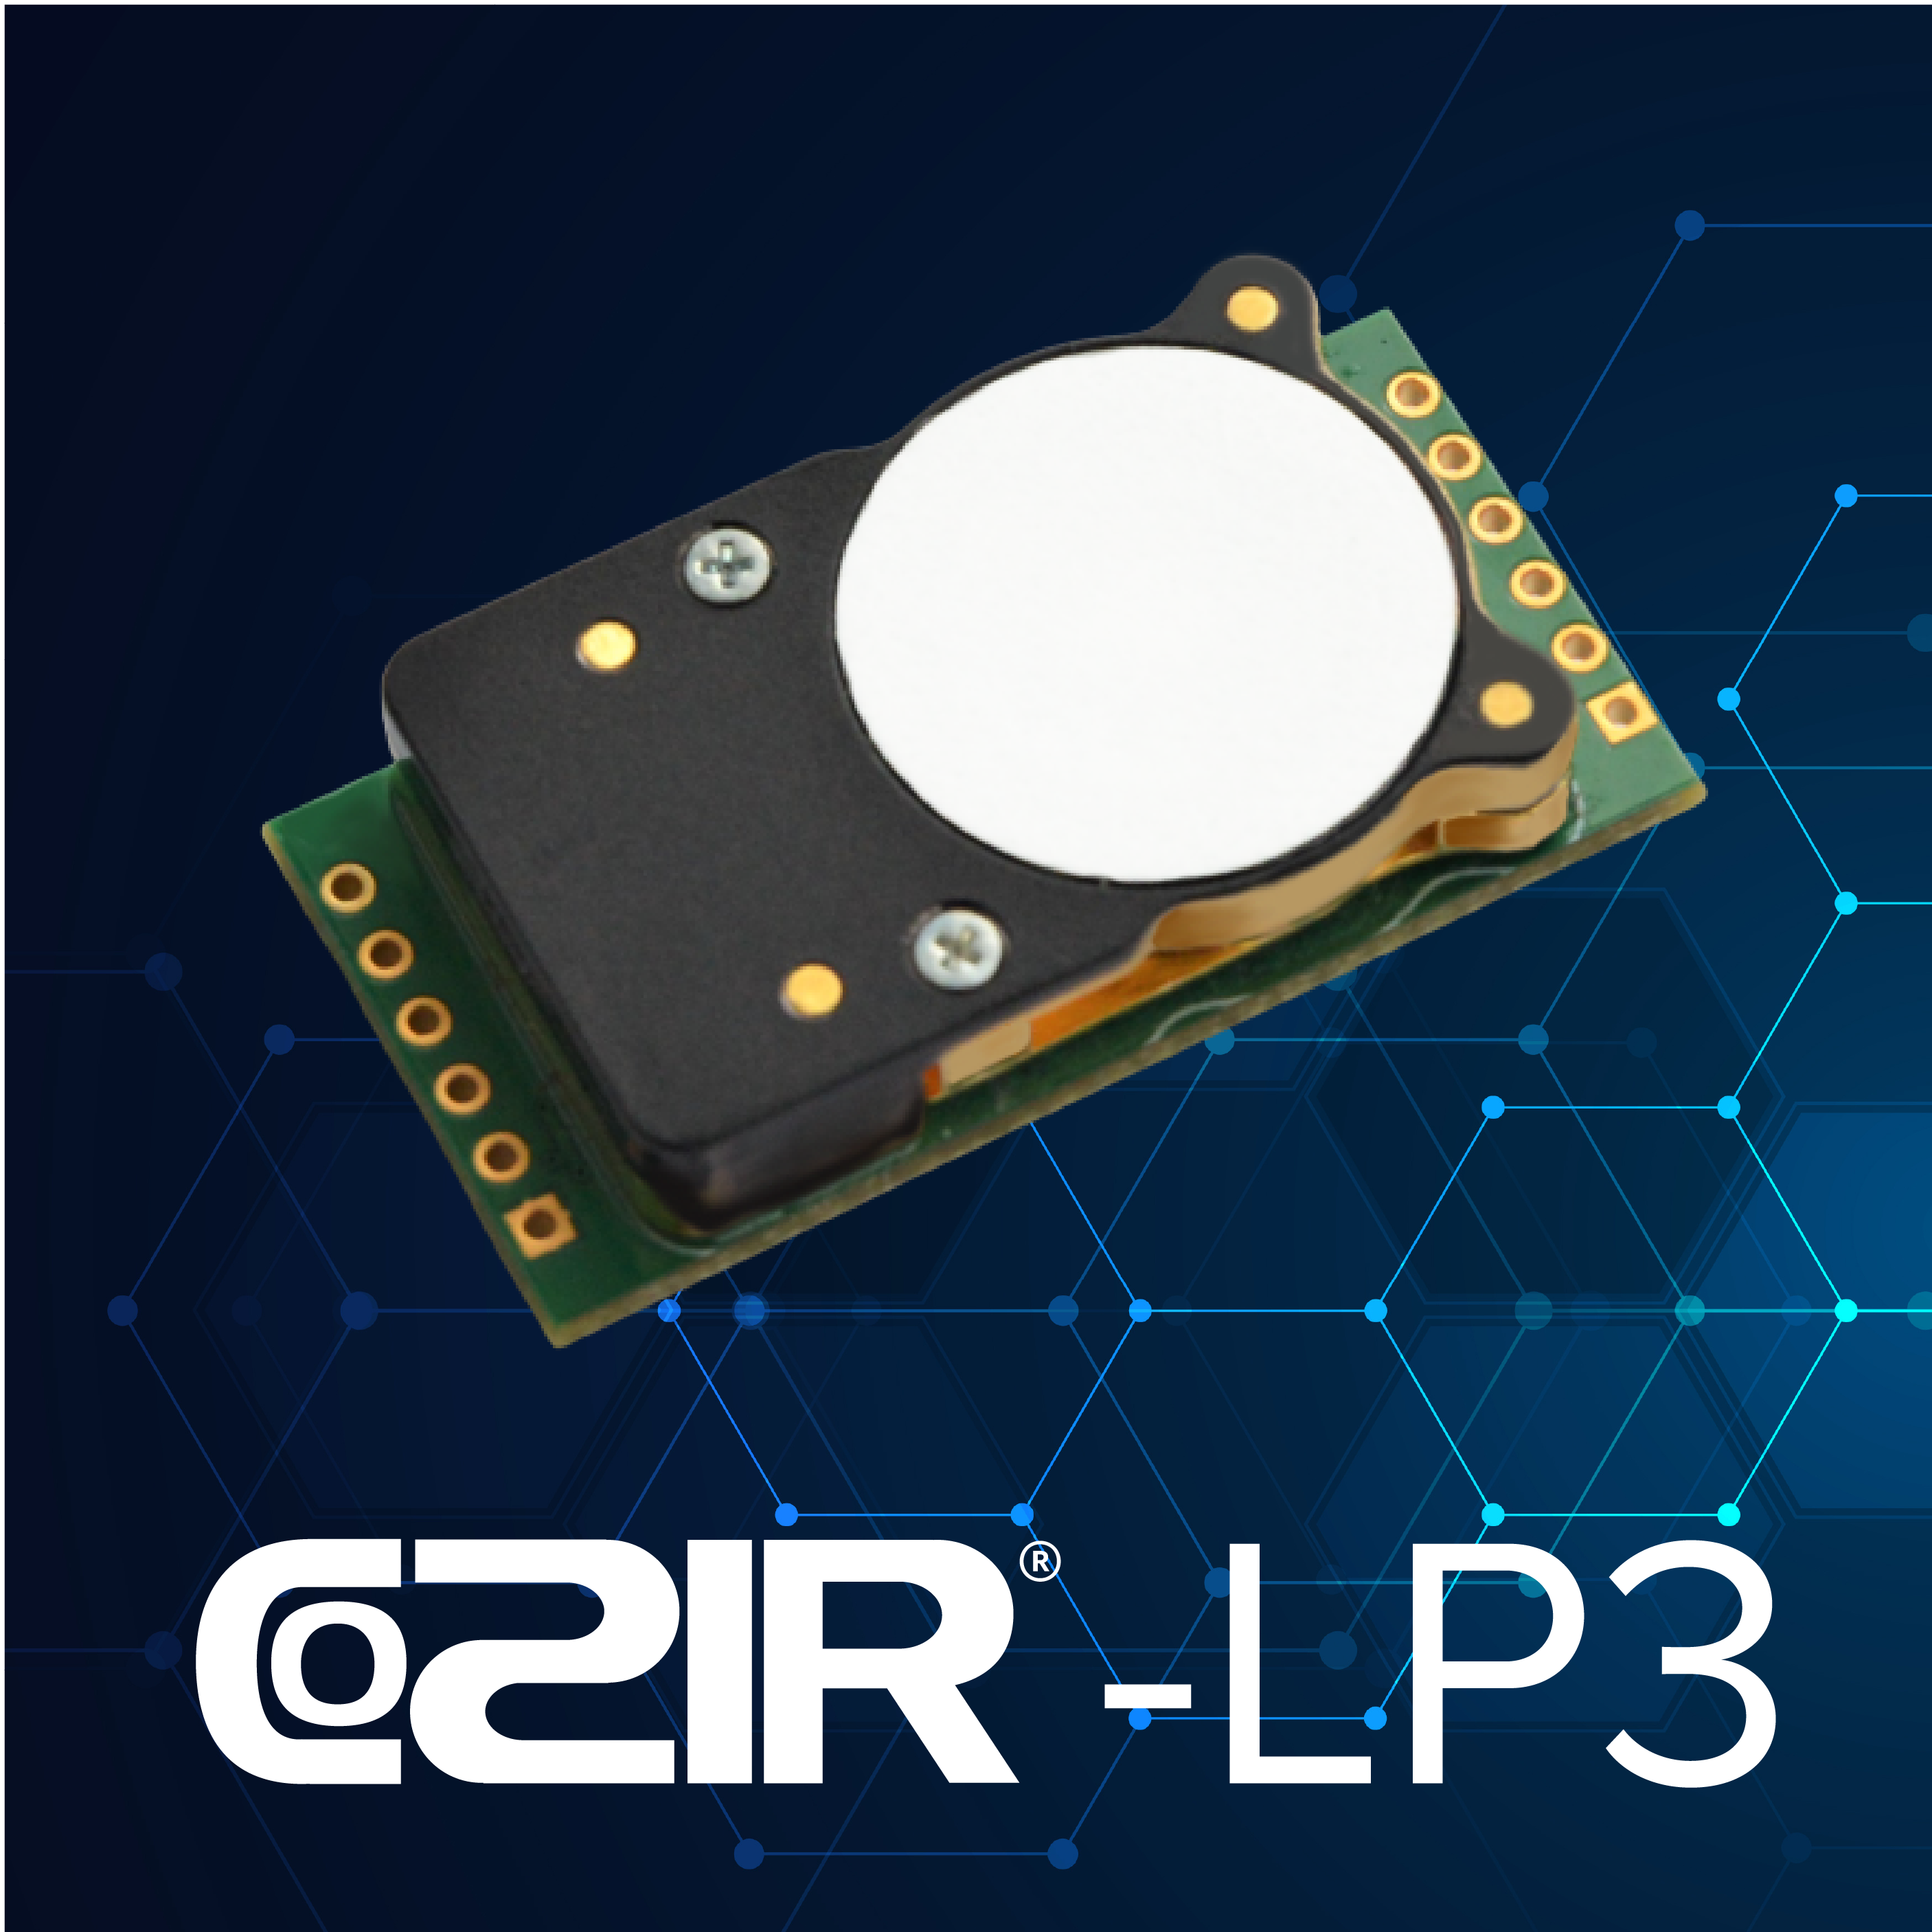 New Ultra-Low Power CO2 Sensor from Gas Sensing Solutions